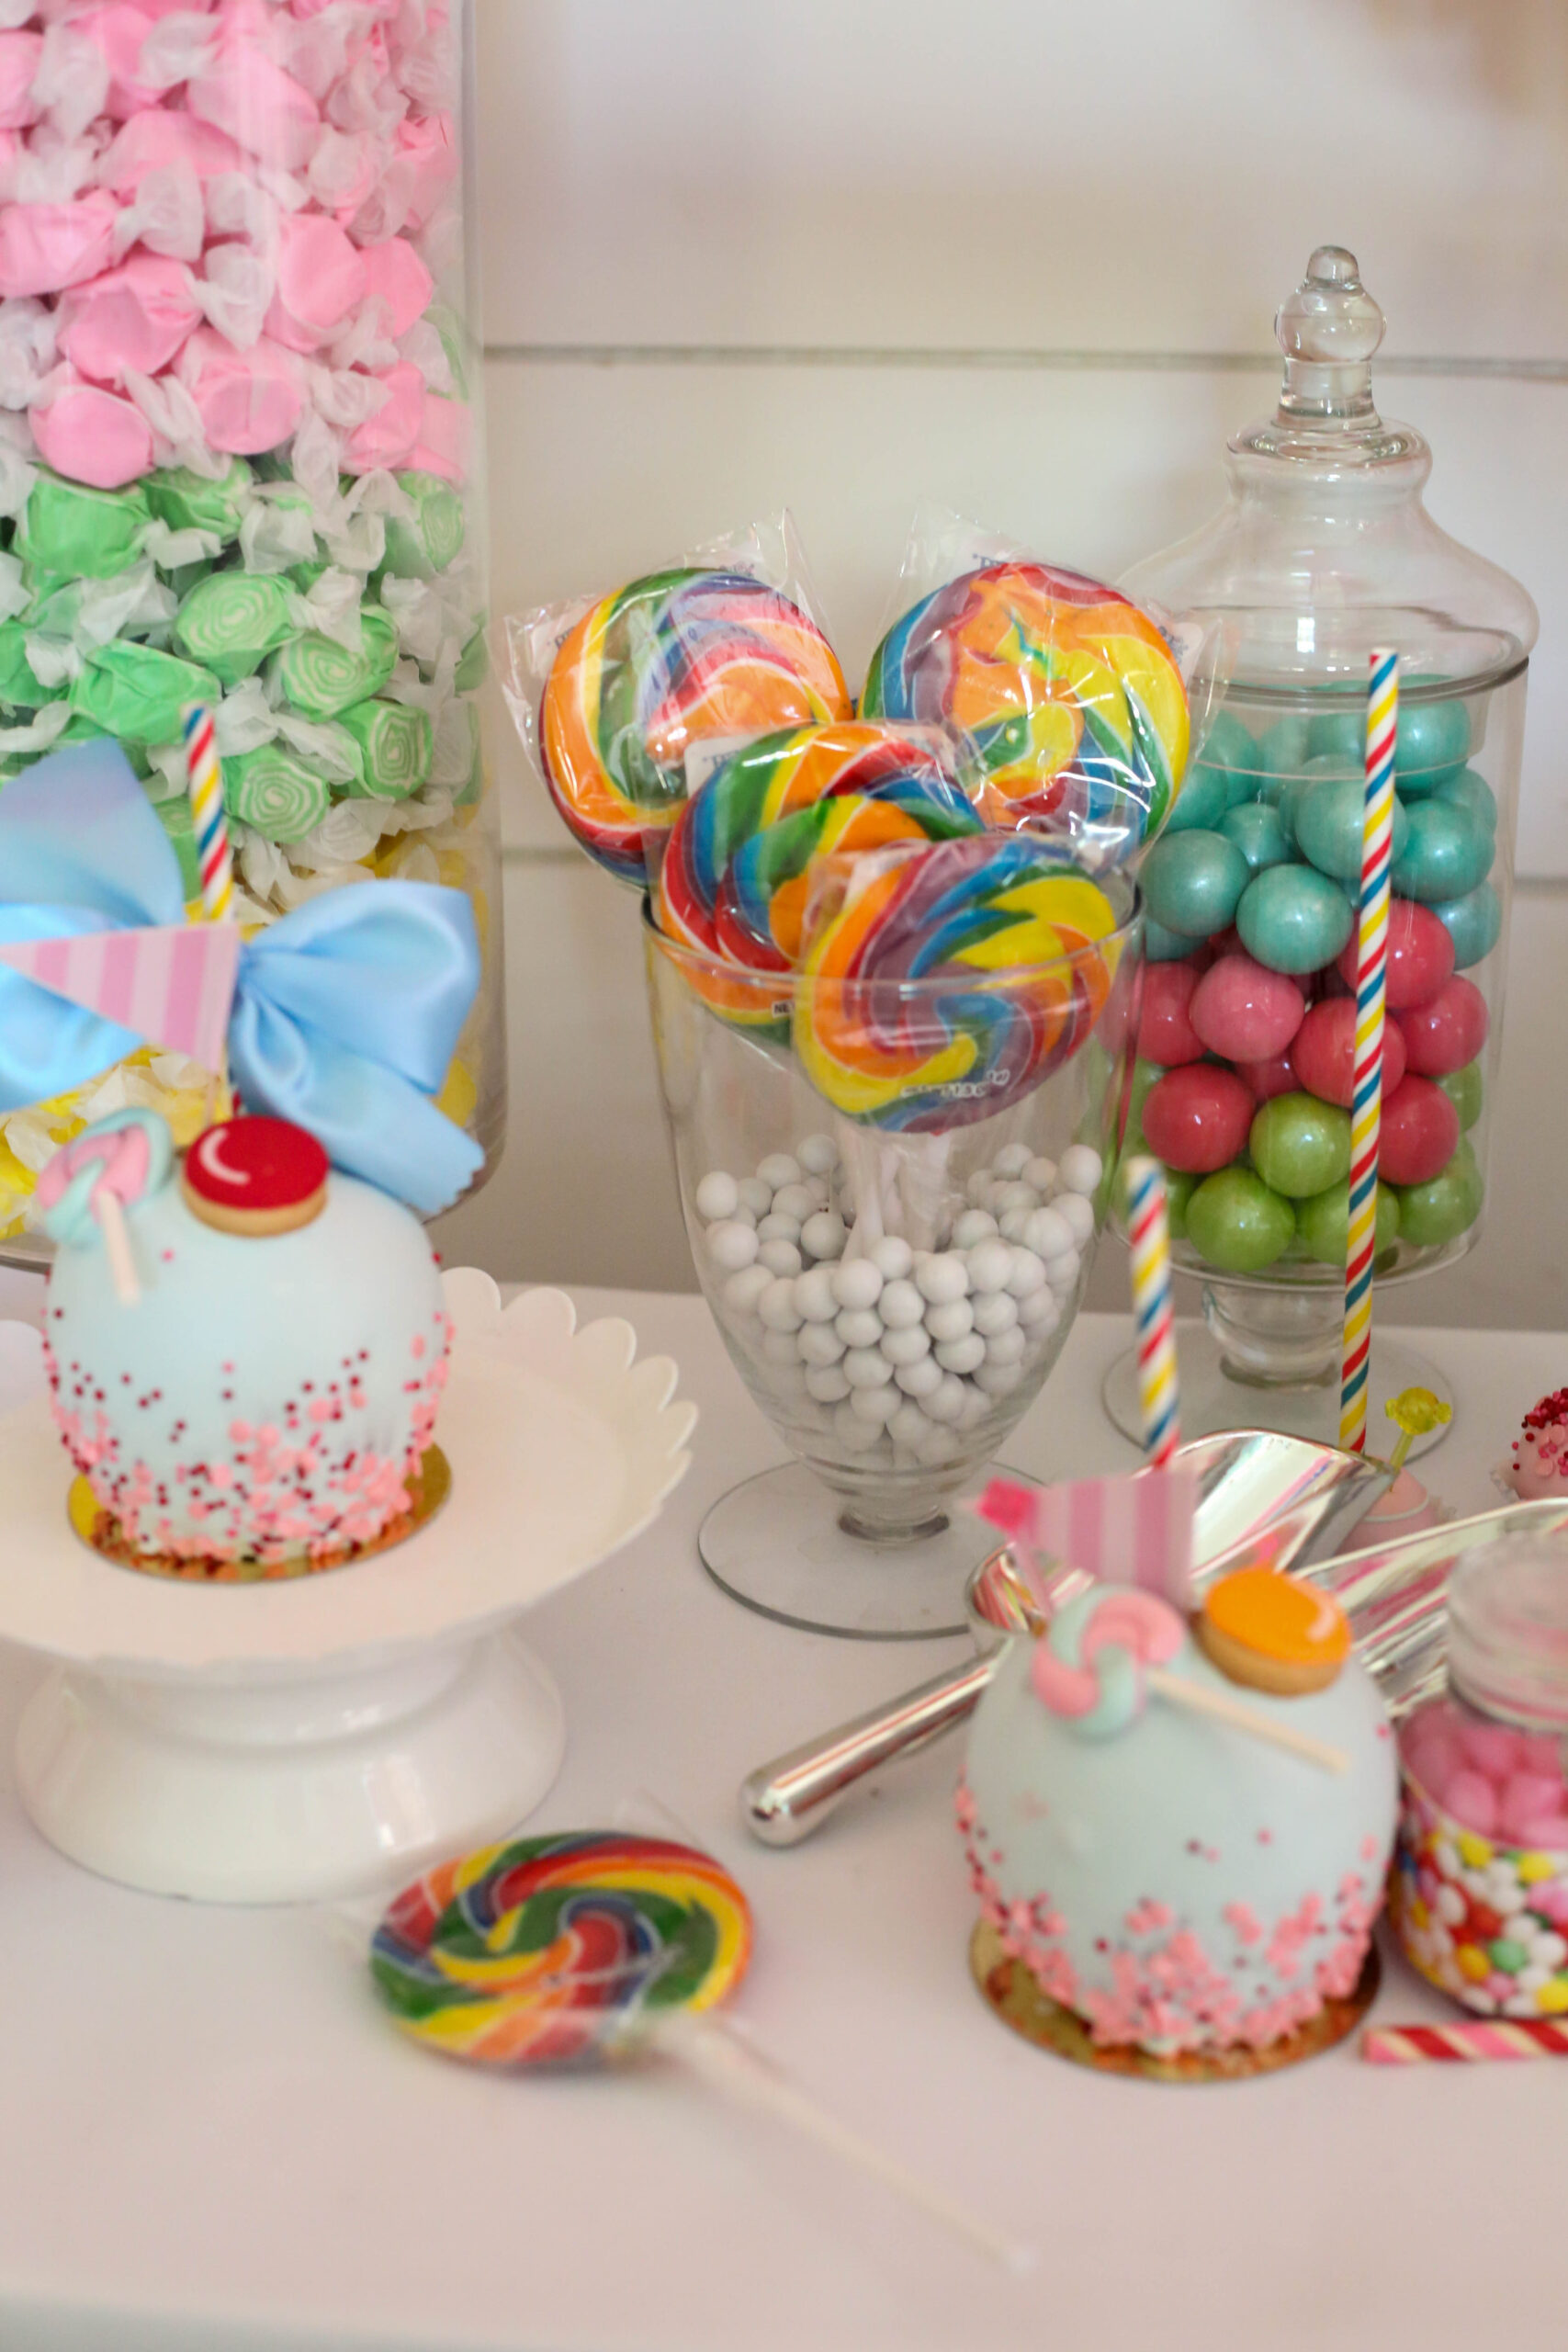 candy jars in a candy buffet display with taffy, lollipops and gumballs